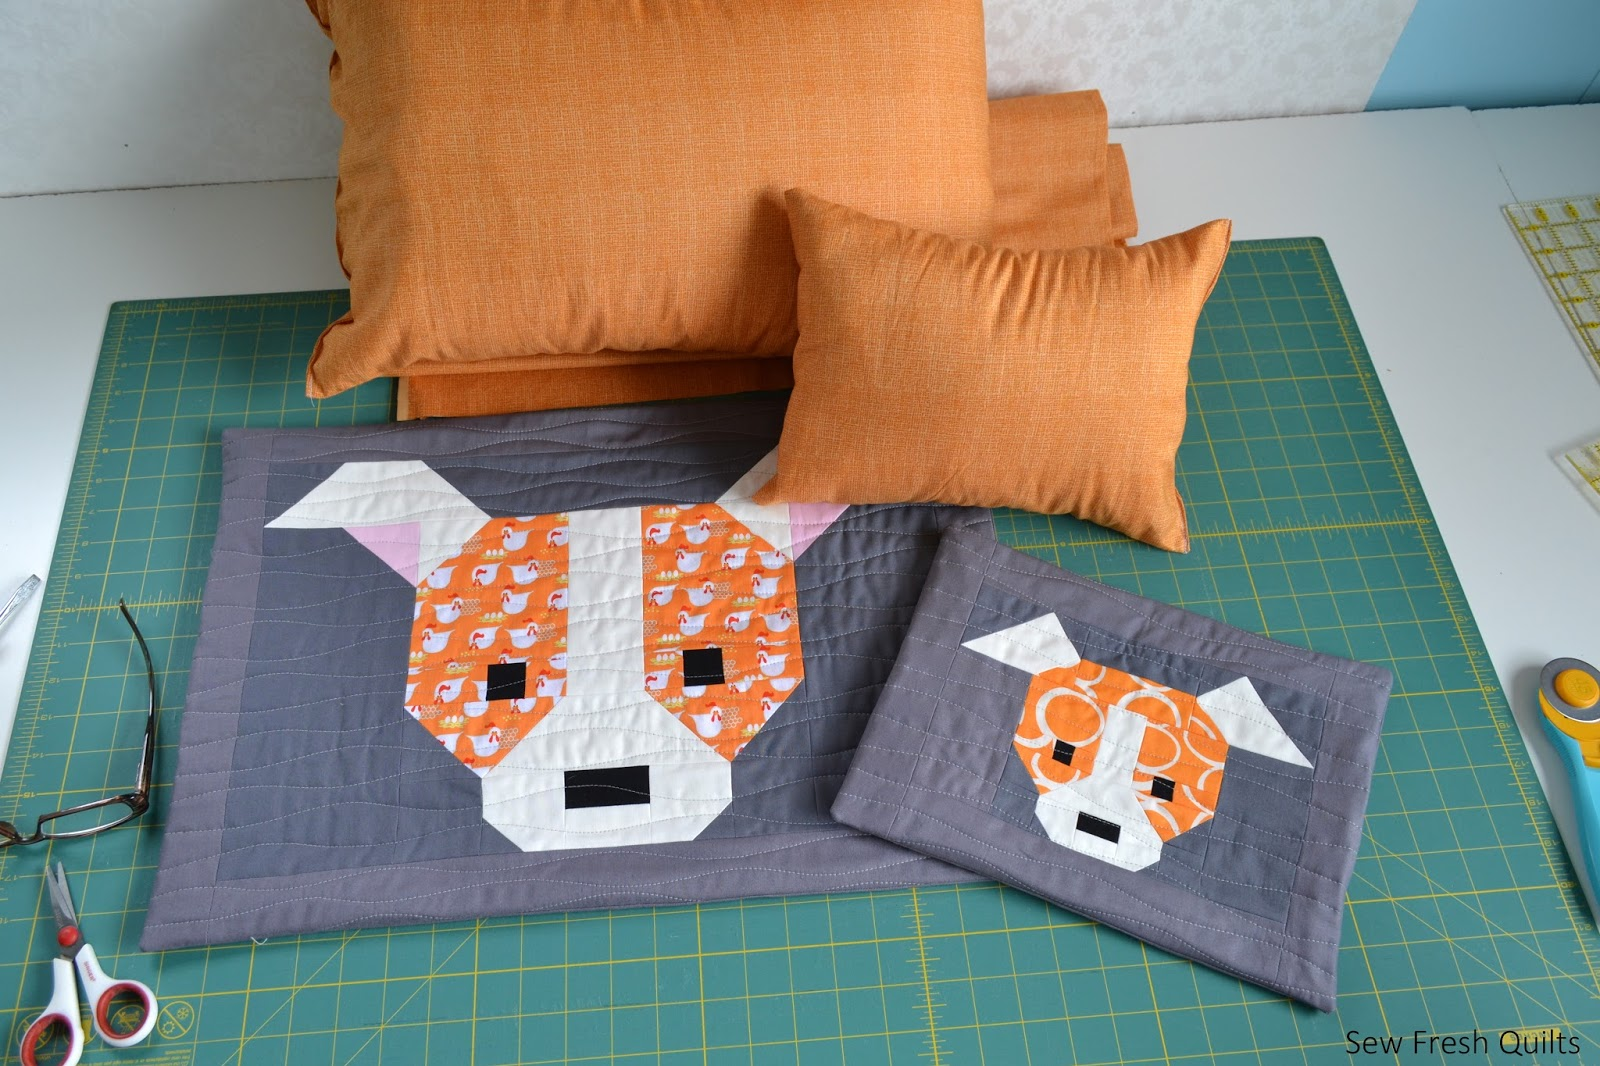 Cute Pillow Ideas To Sew : Sew Fresh Quilts: Dog Gone Cute Zippered Pillows